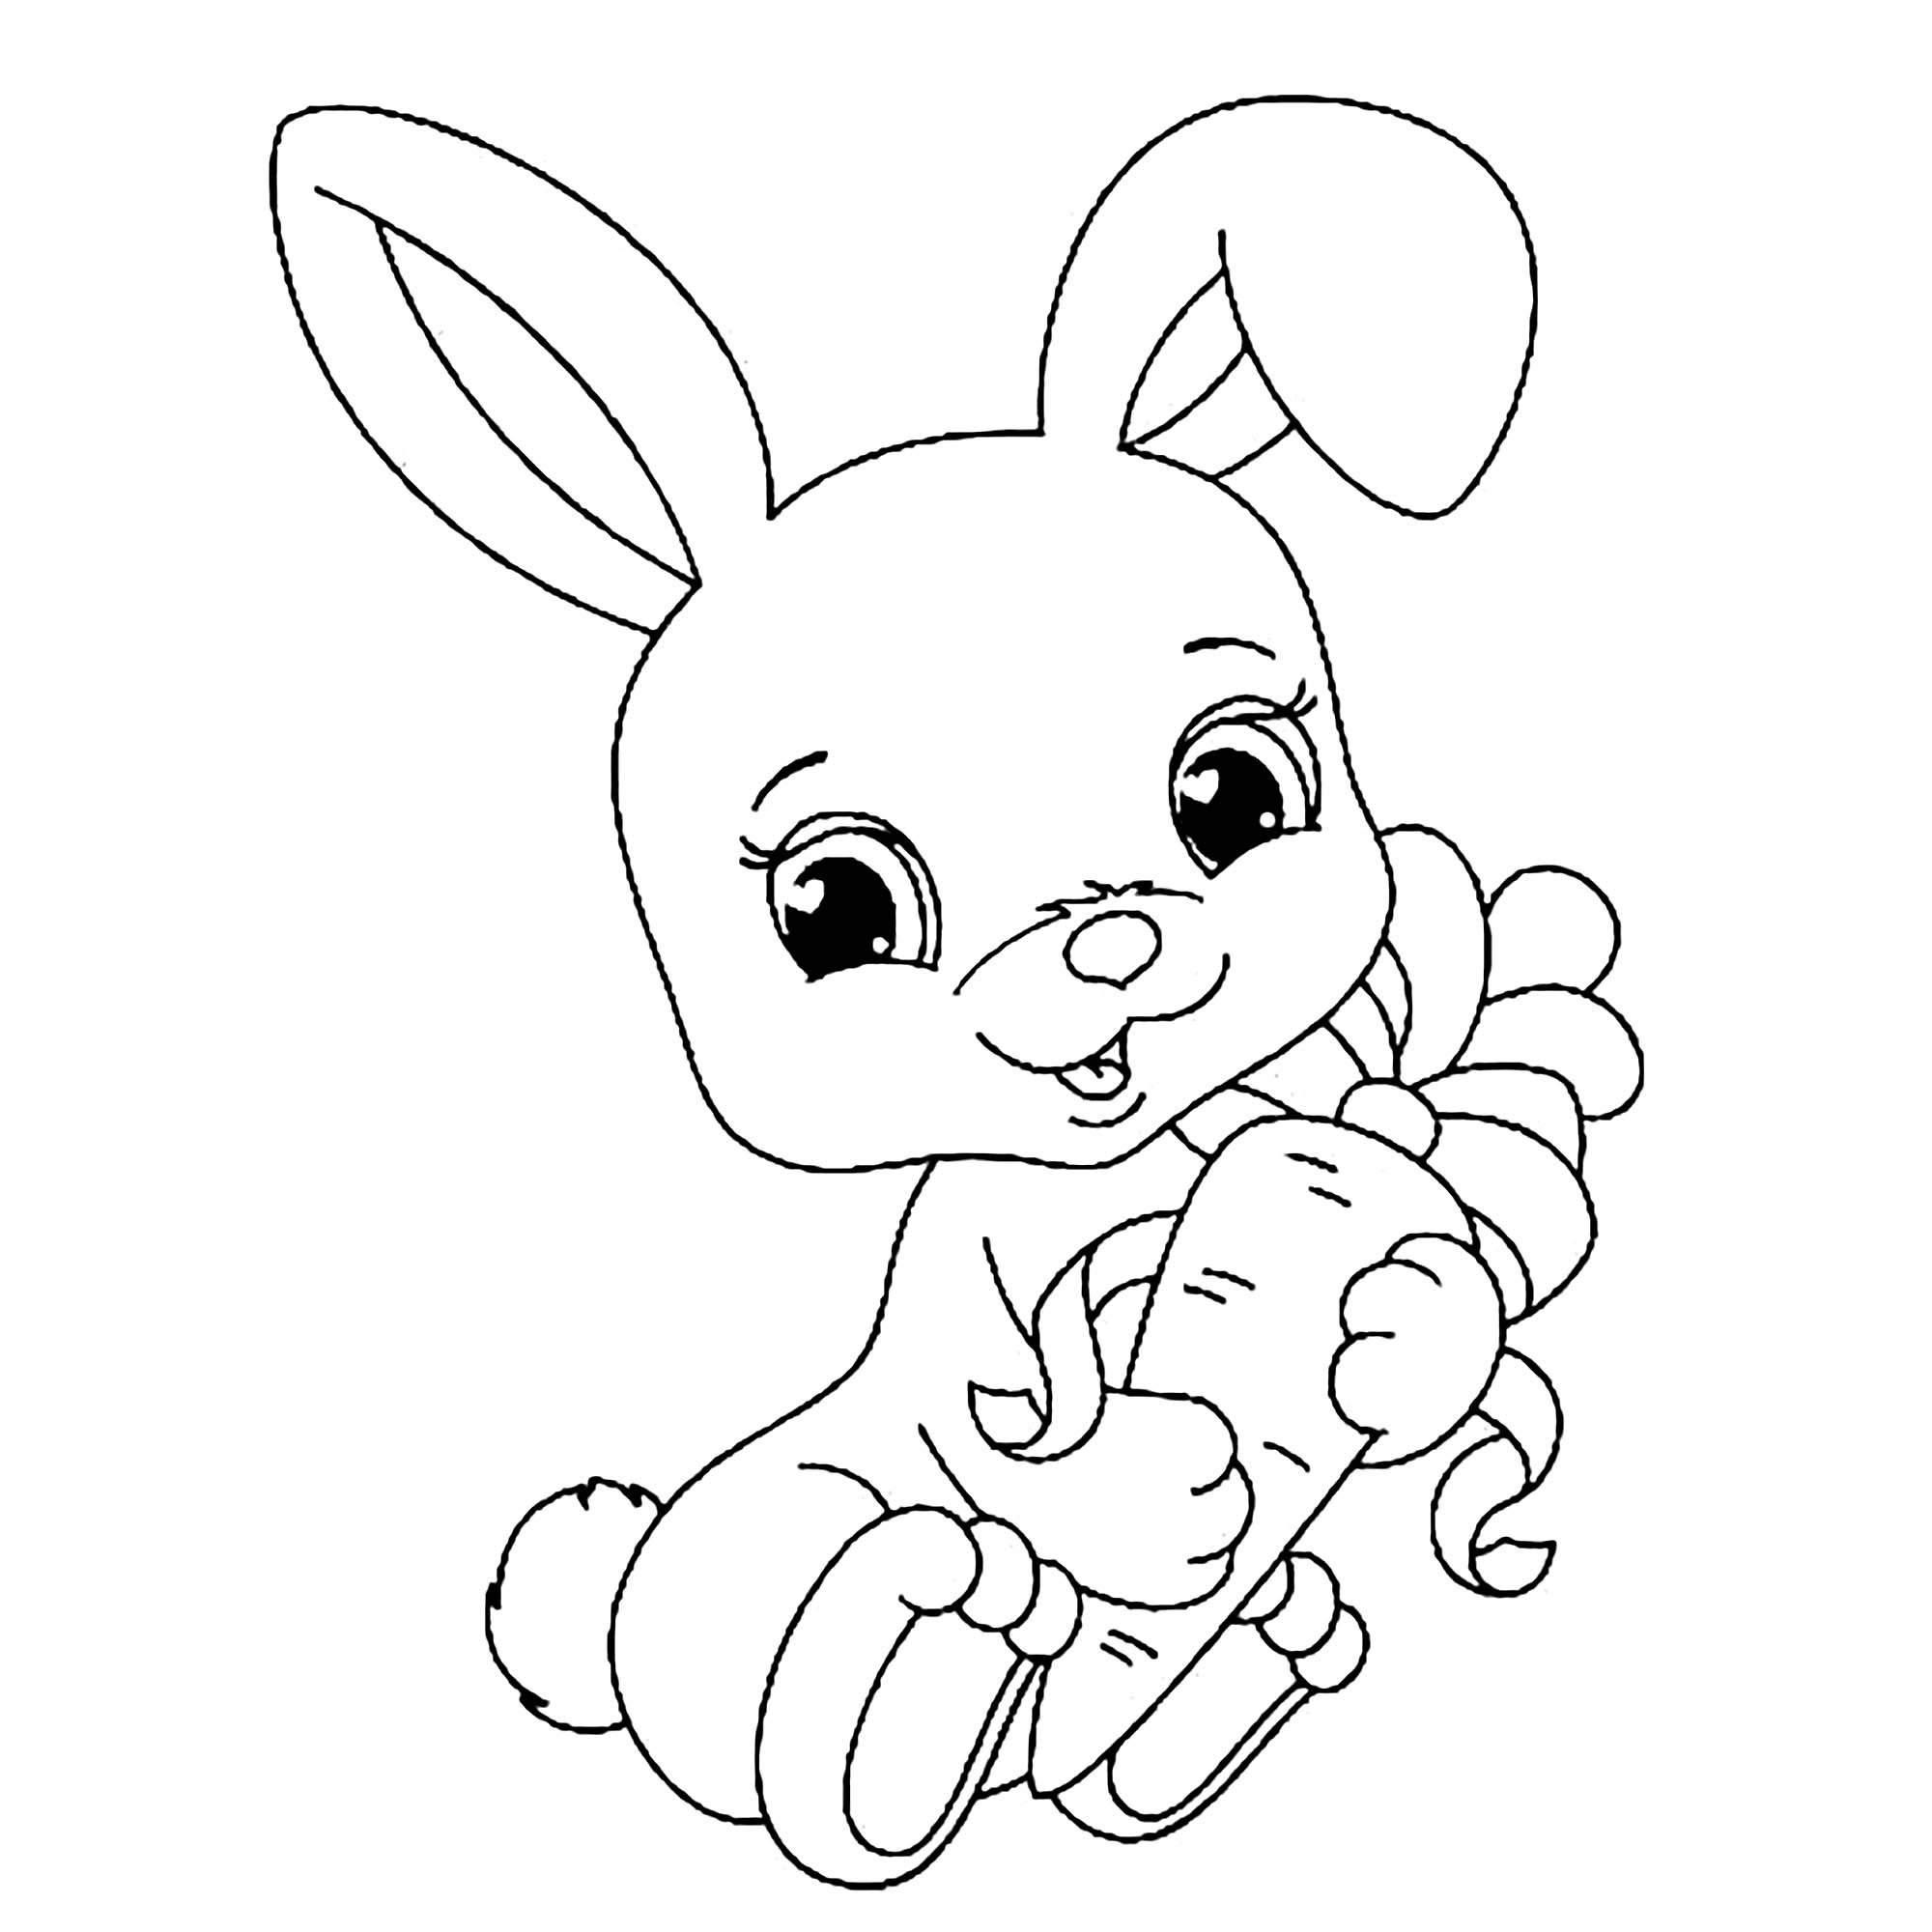 Rabbit Holding Carrot Colouring Image